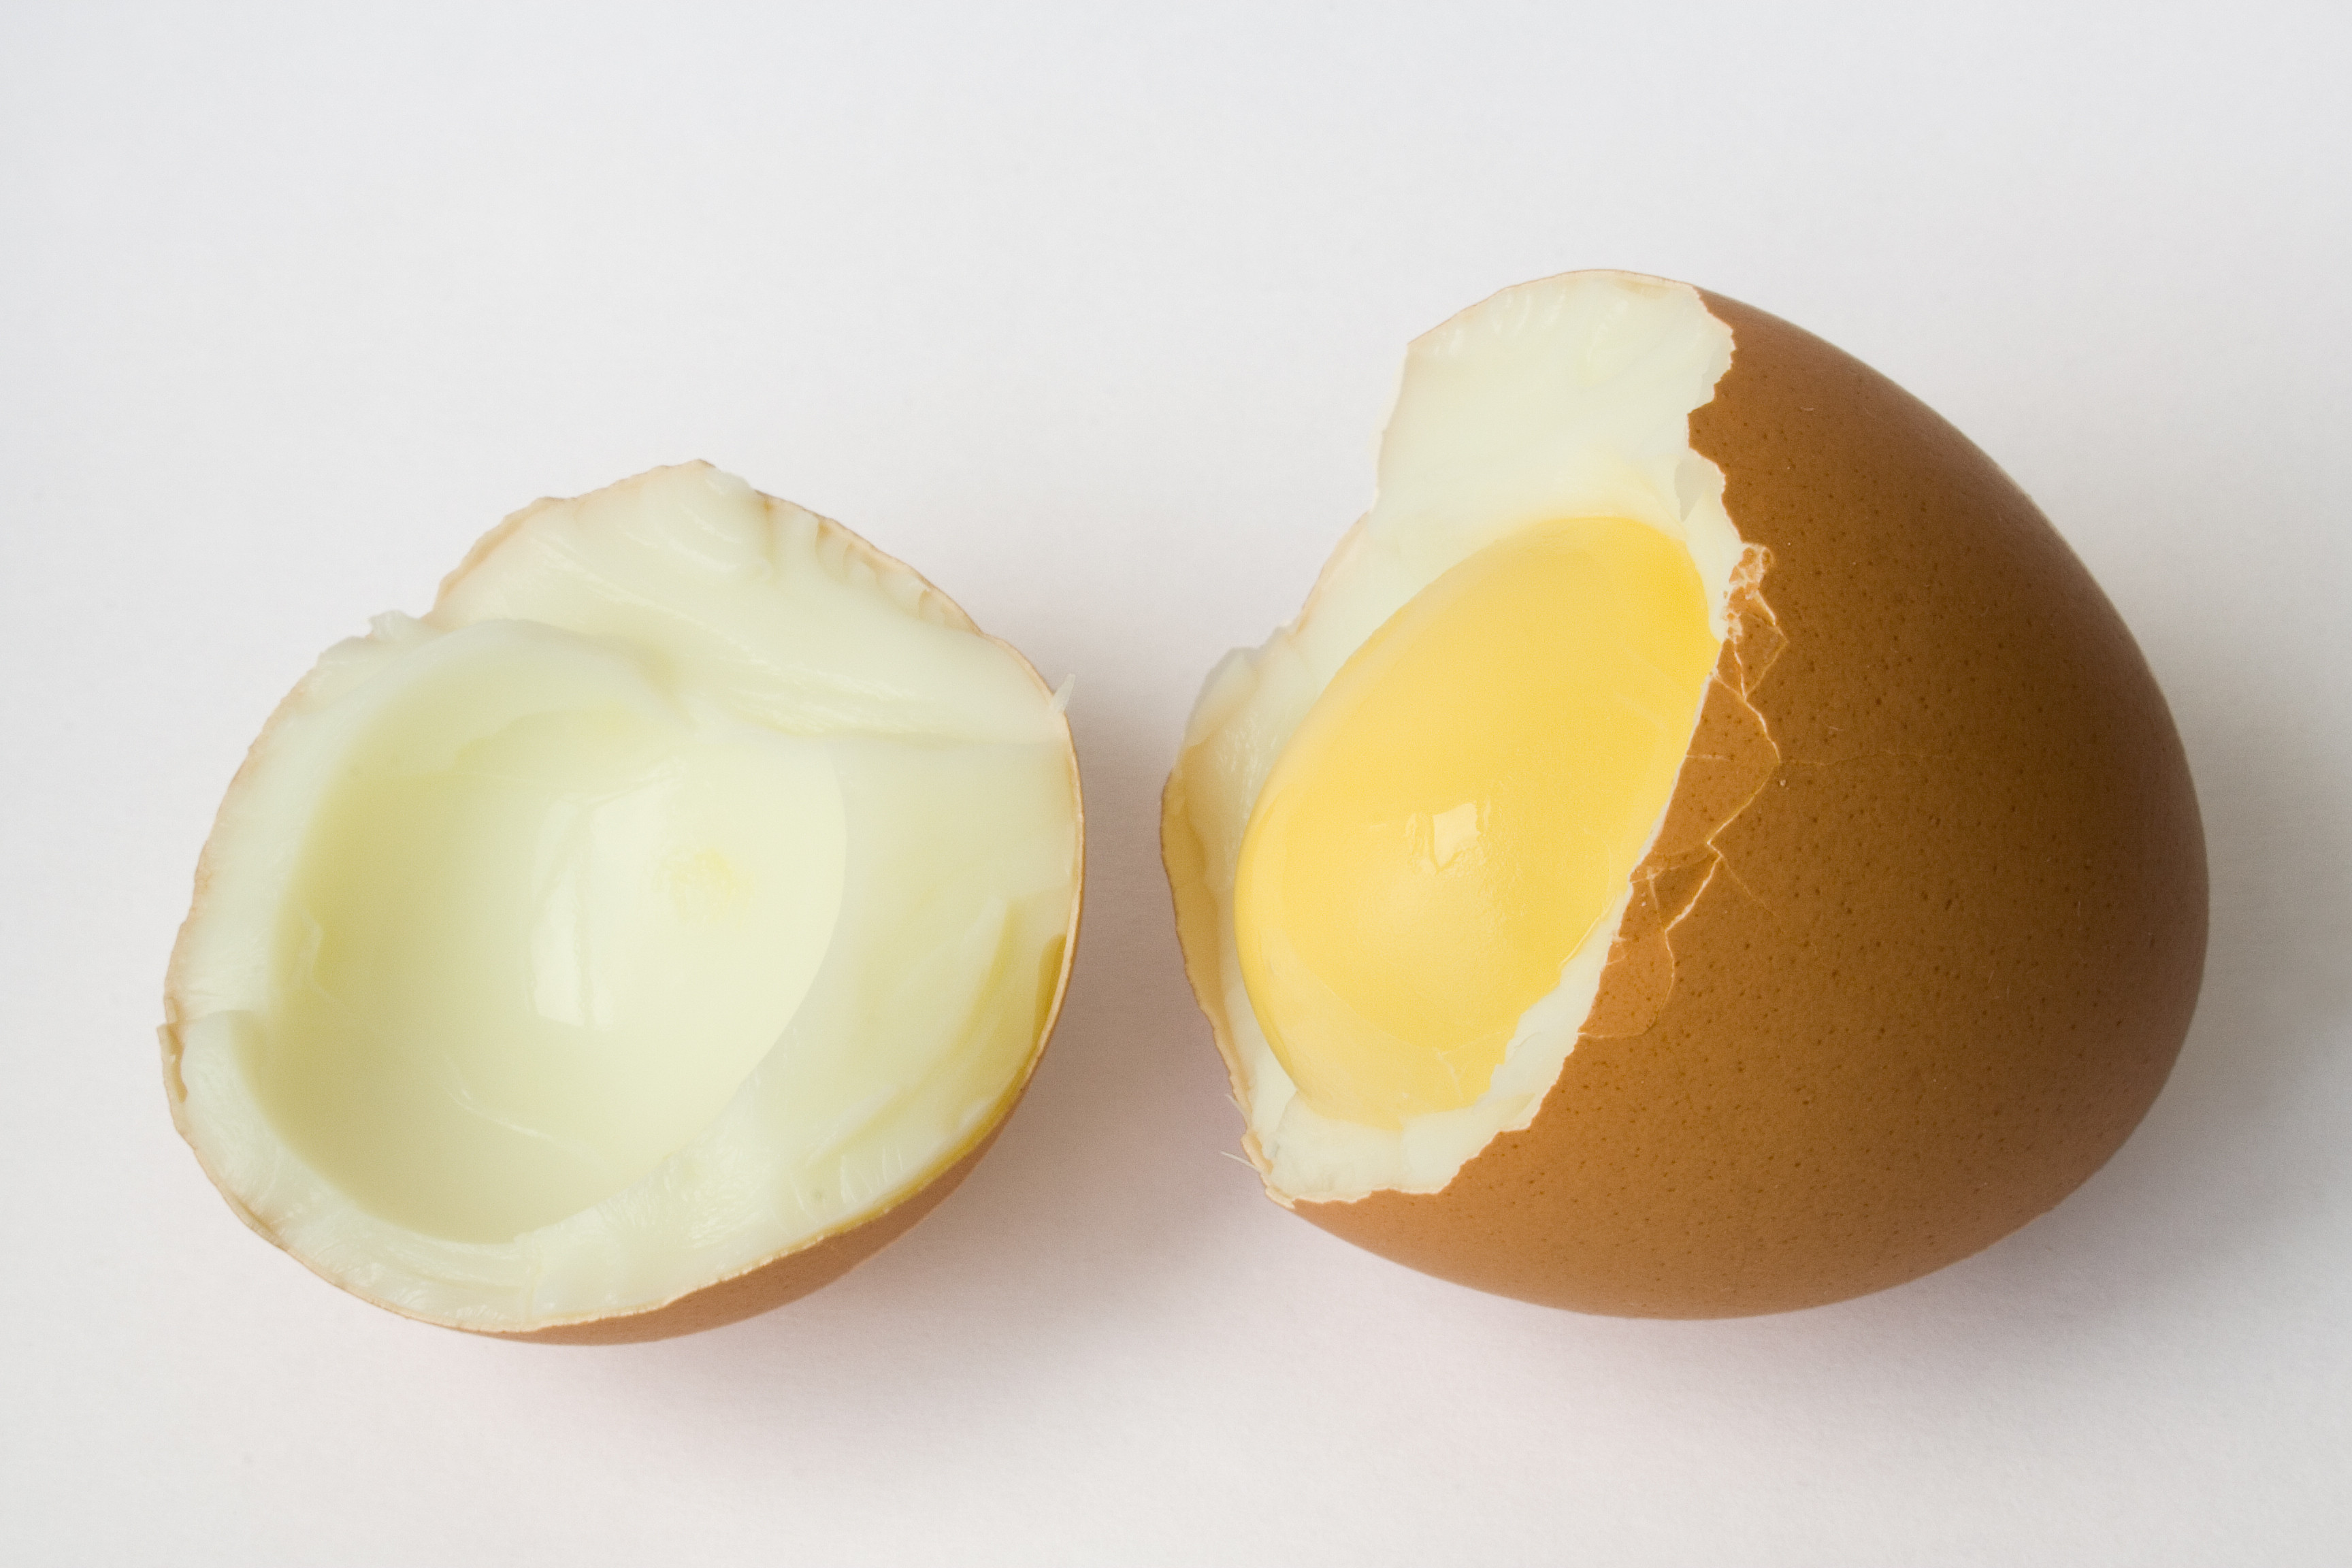 When You Could Be Enjoying This Perfection Of A Boiled Egg